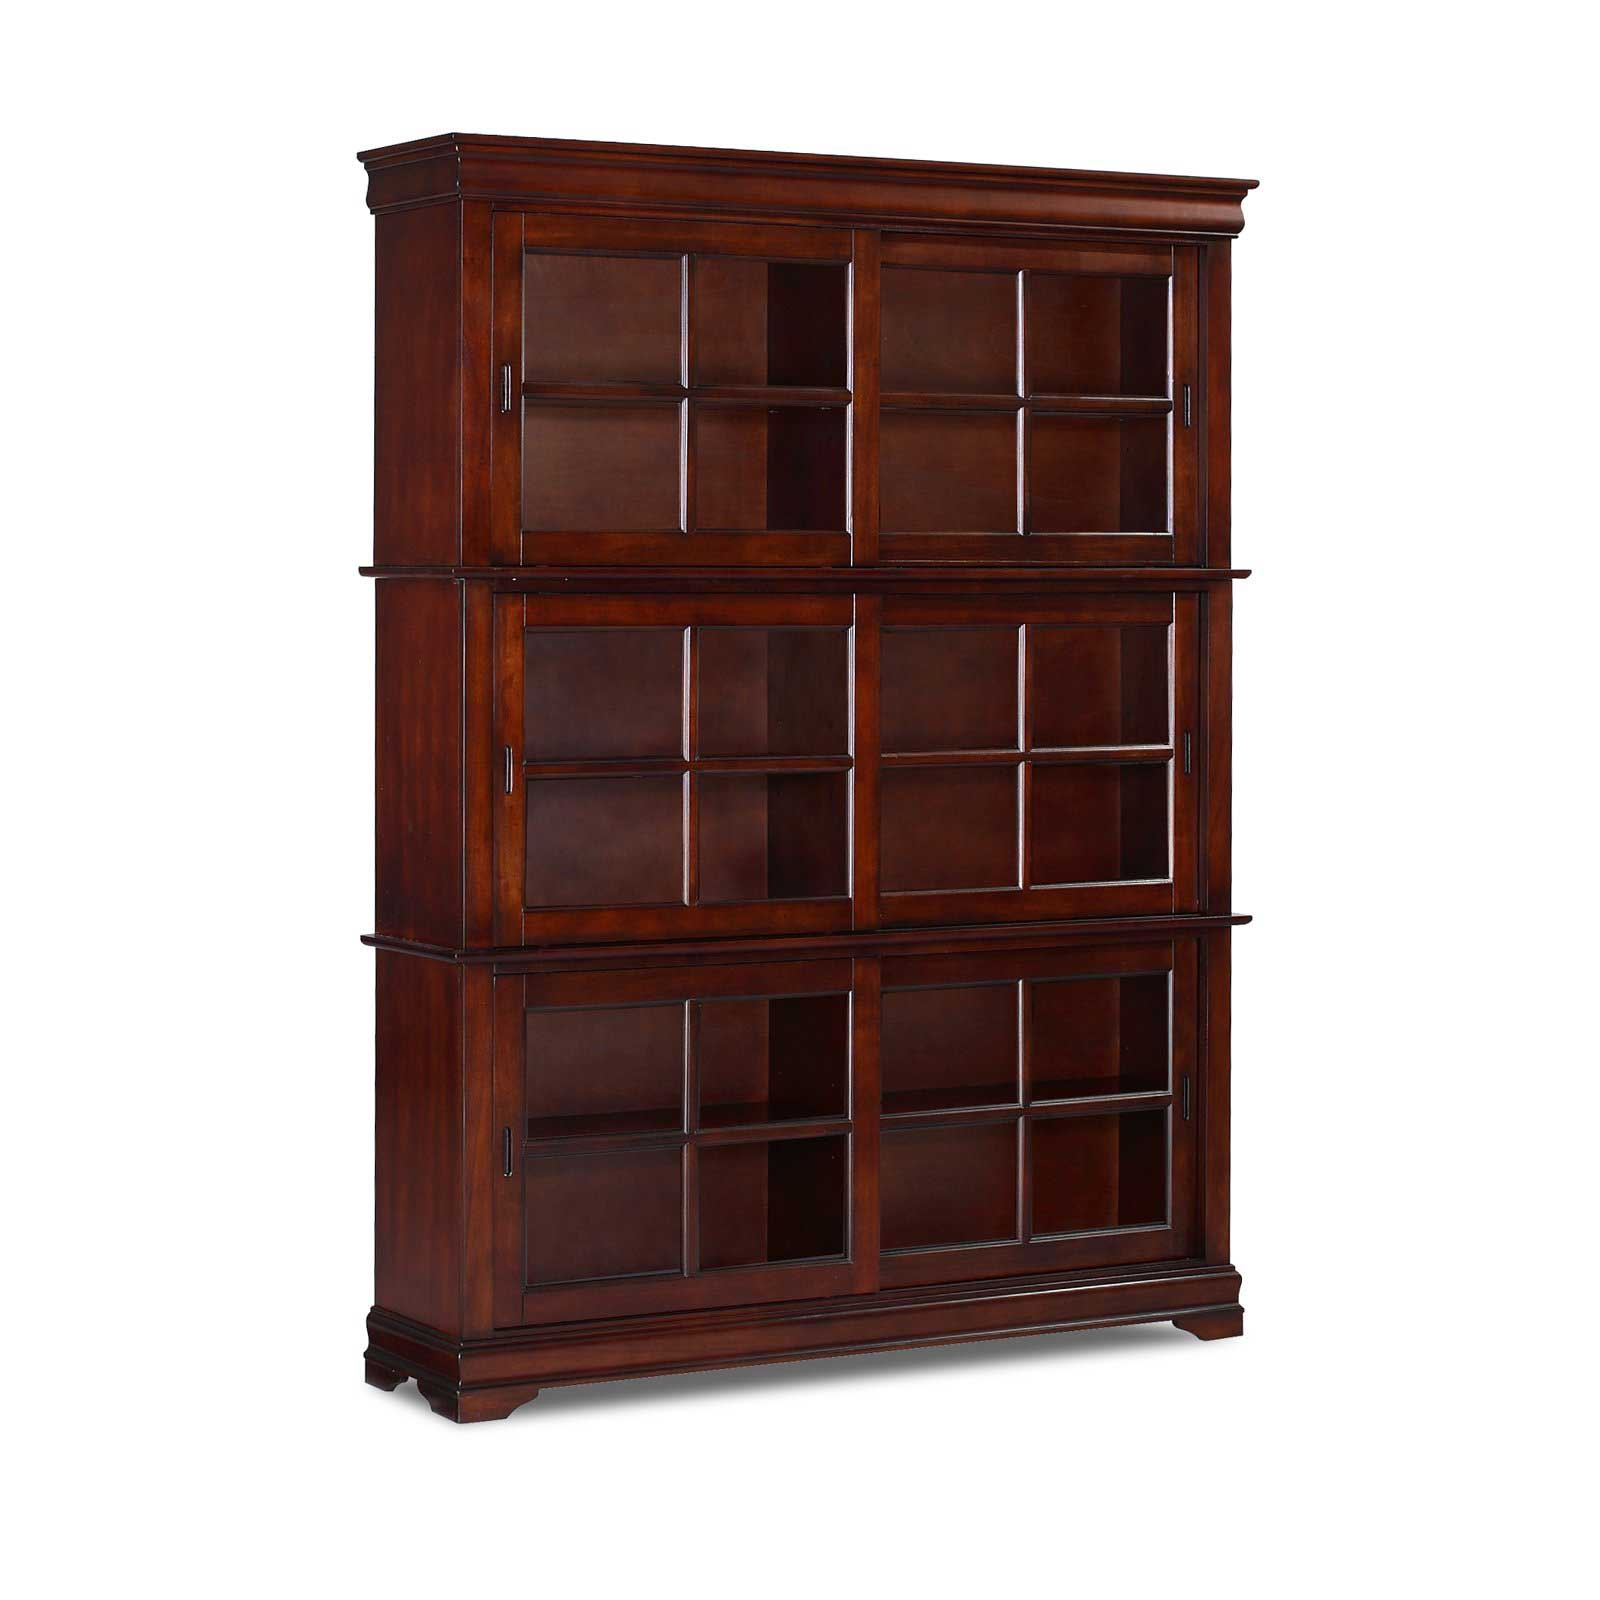 Dijon II Sliding Door Cherry Barrister Bookcase